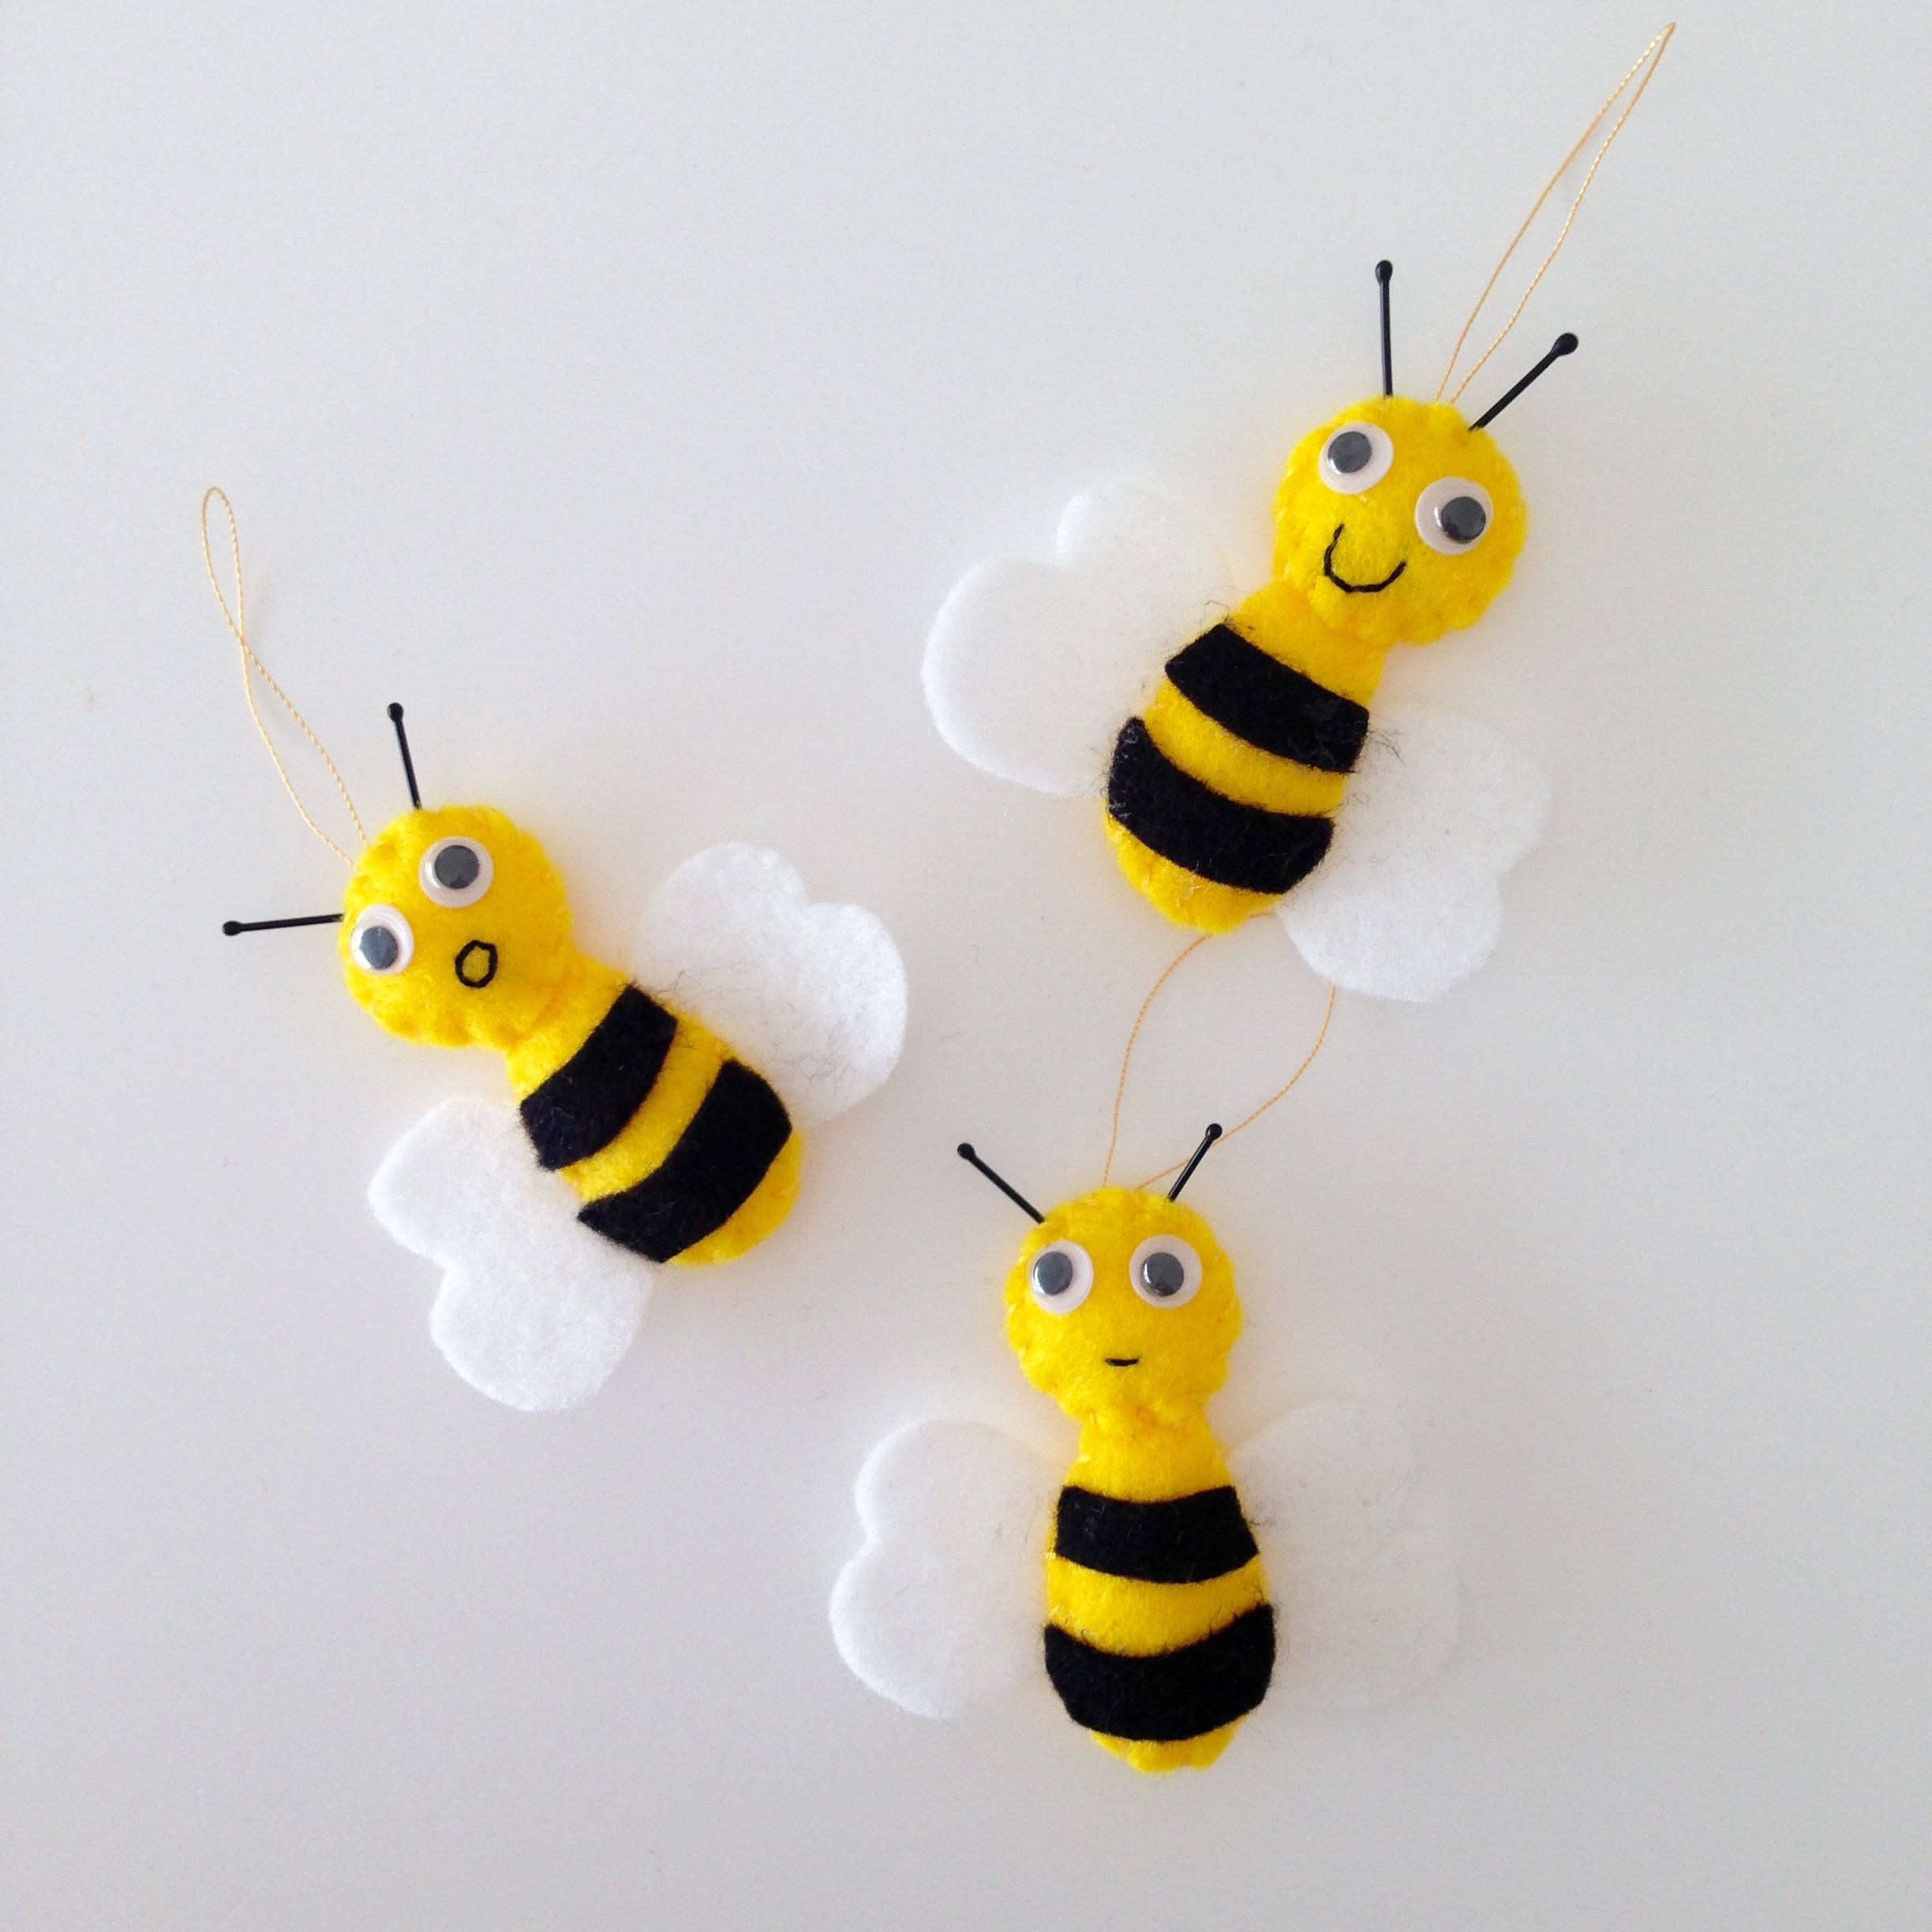 Bees Ornament Home Decor Spring Easter Honey Bee